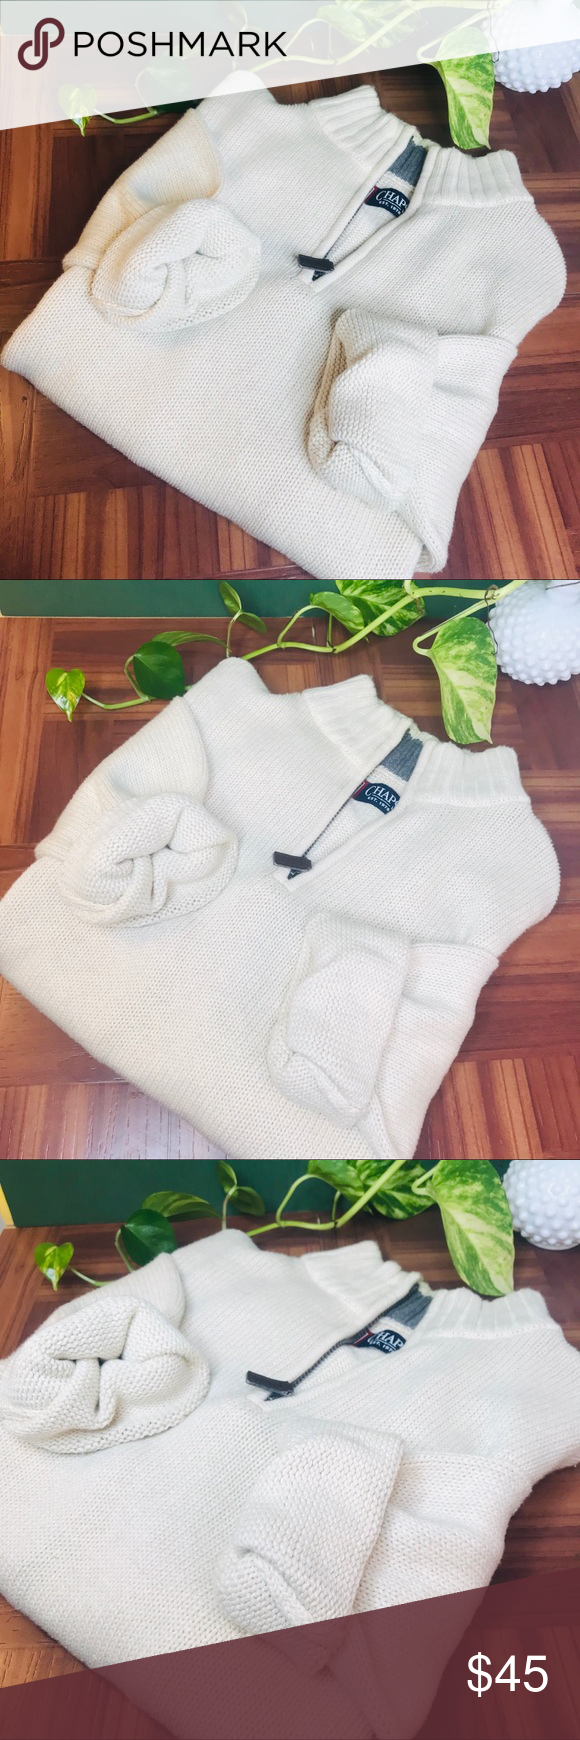 vtg vsco 90s oversized boyfriend pullover vtg vsco 90s oversized boyfriend pullover  • Tags say large but would fit a medium or small nicely as an o...